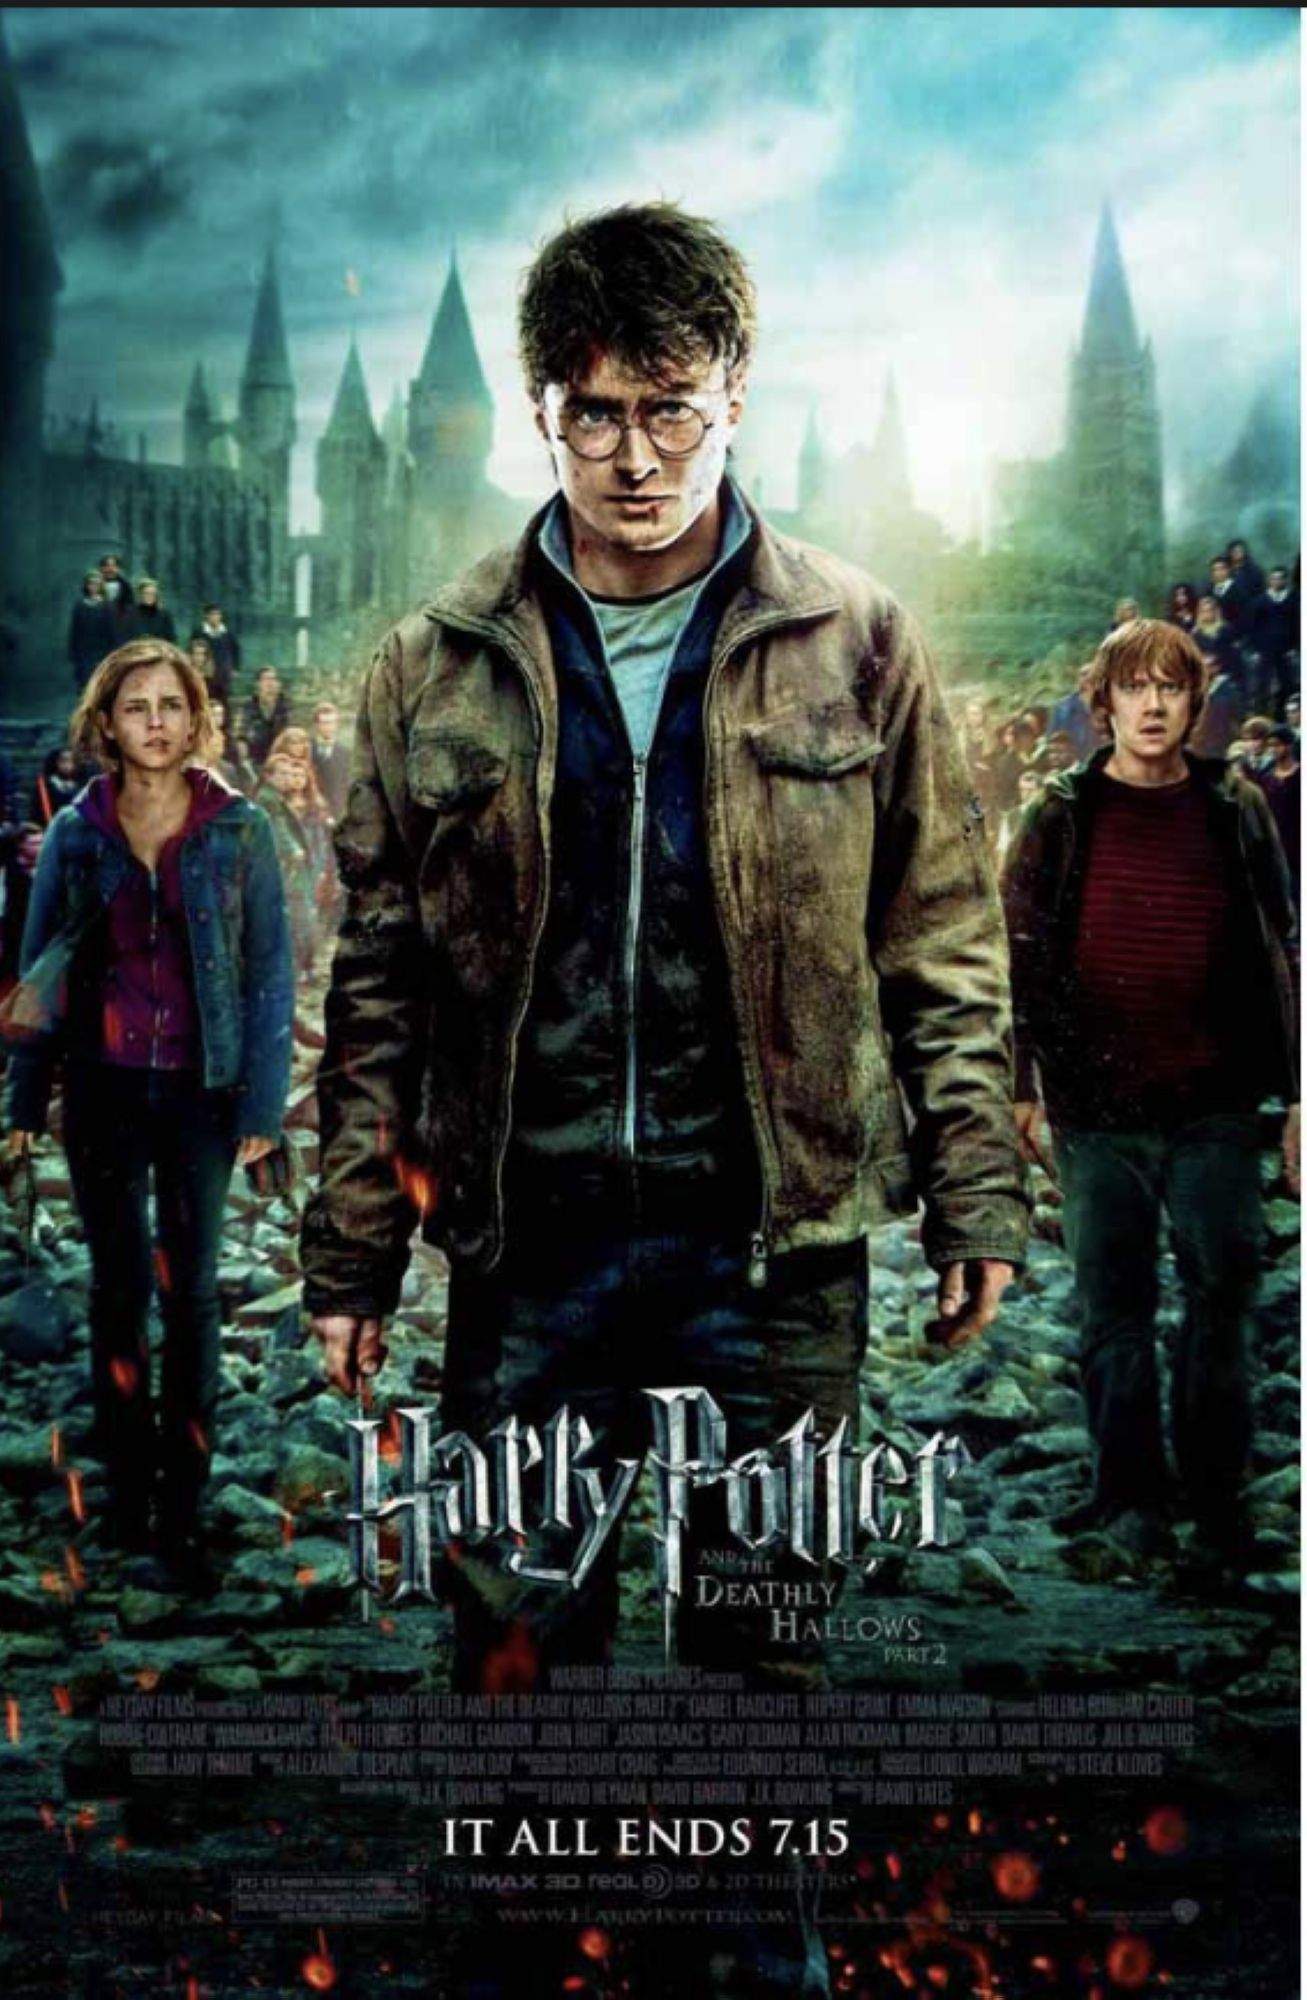 01-Harry-Potter-Deahtly-Hallows-part-2